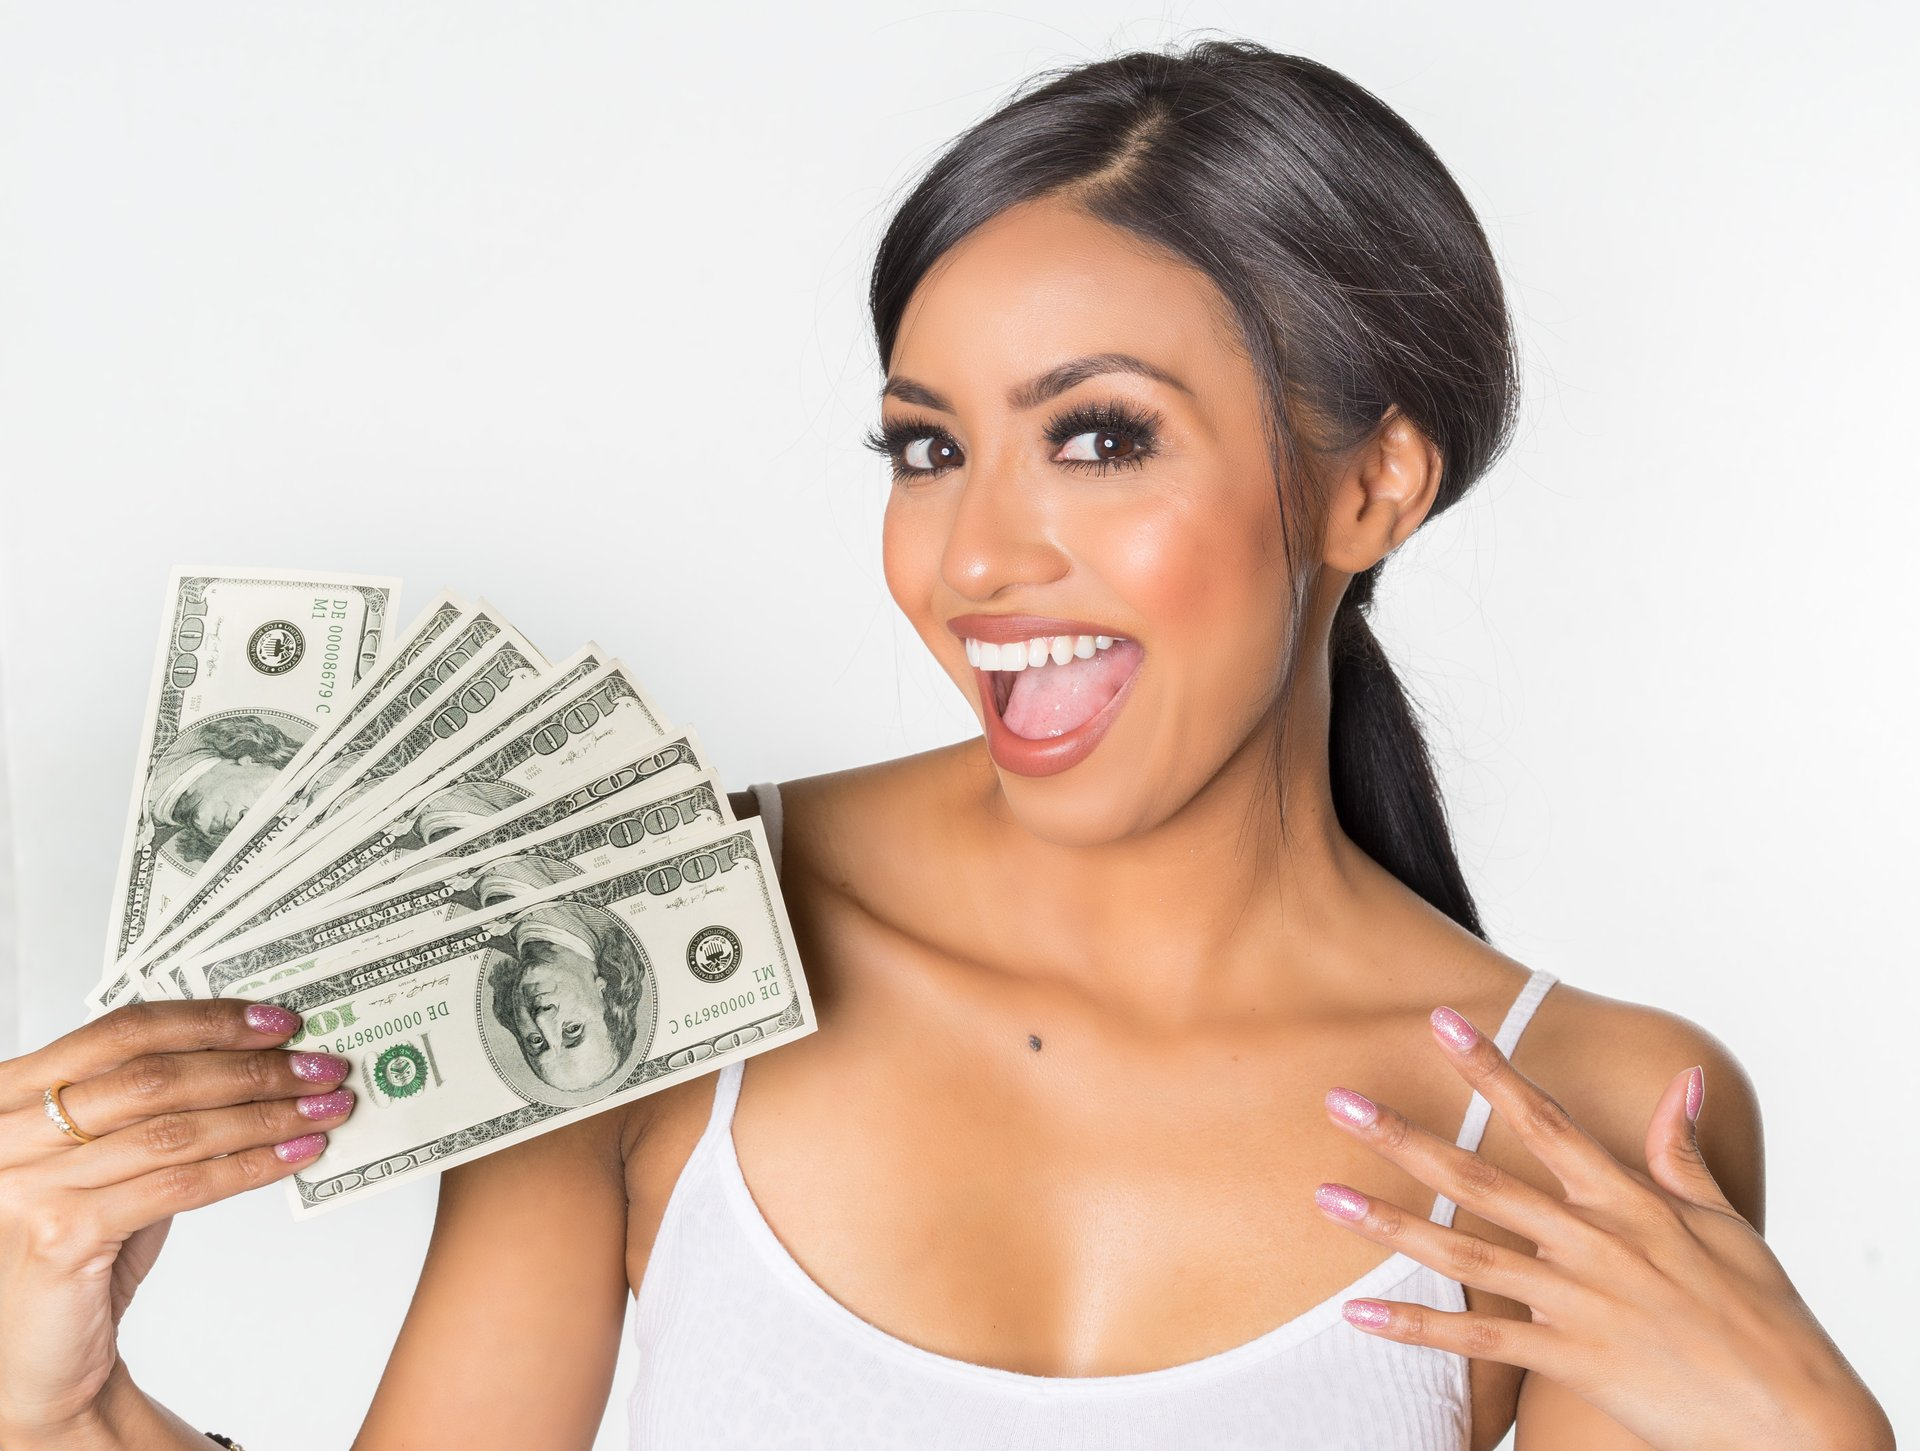 Woman holding wad of money